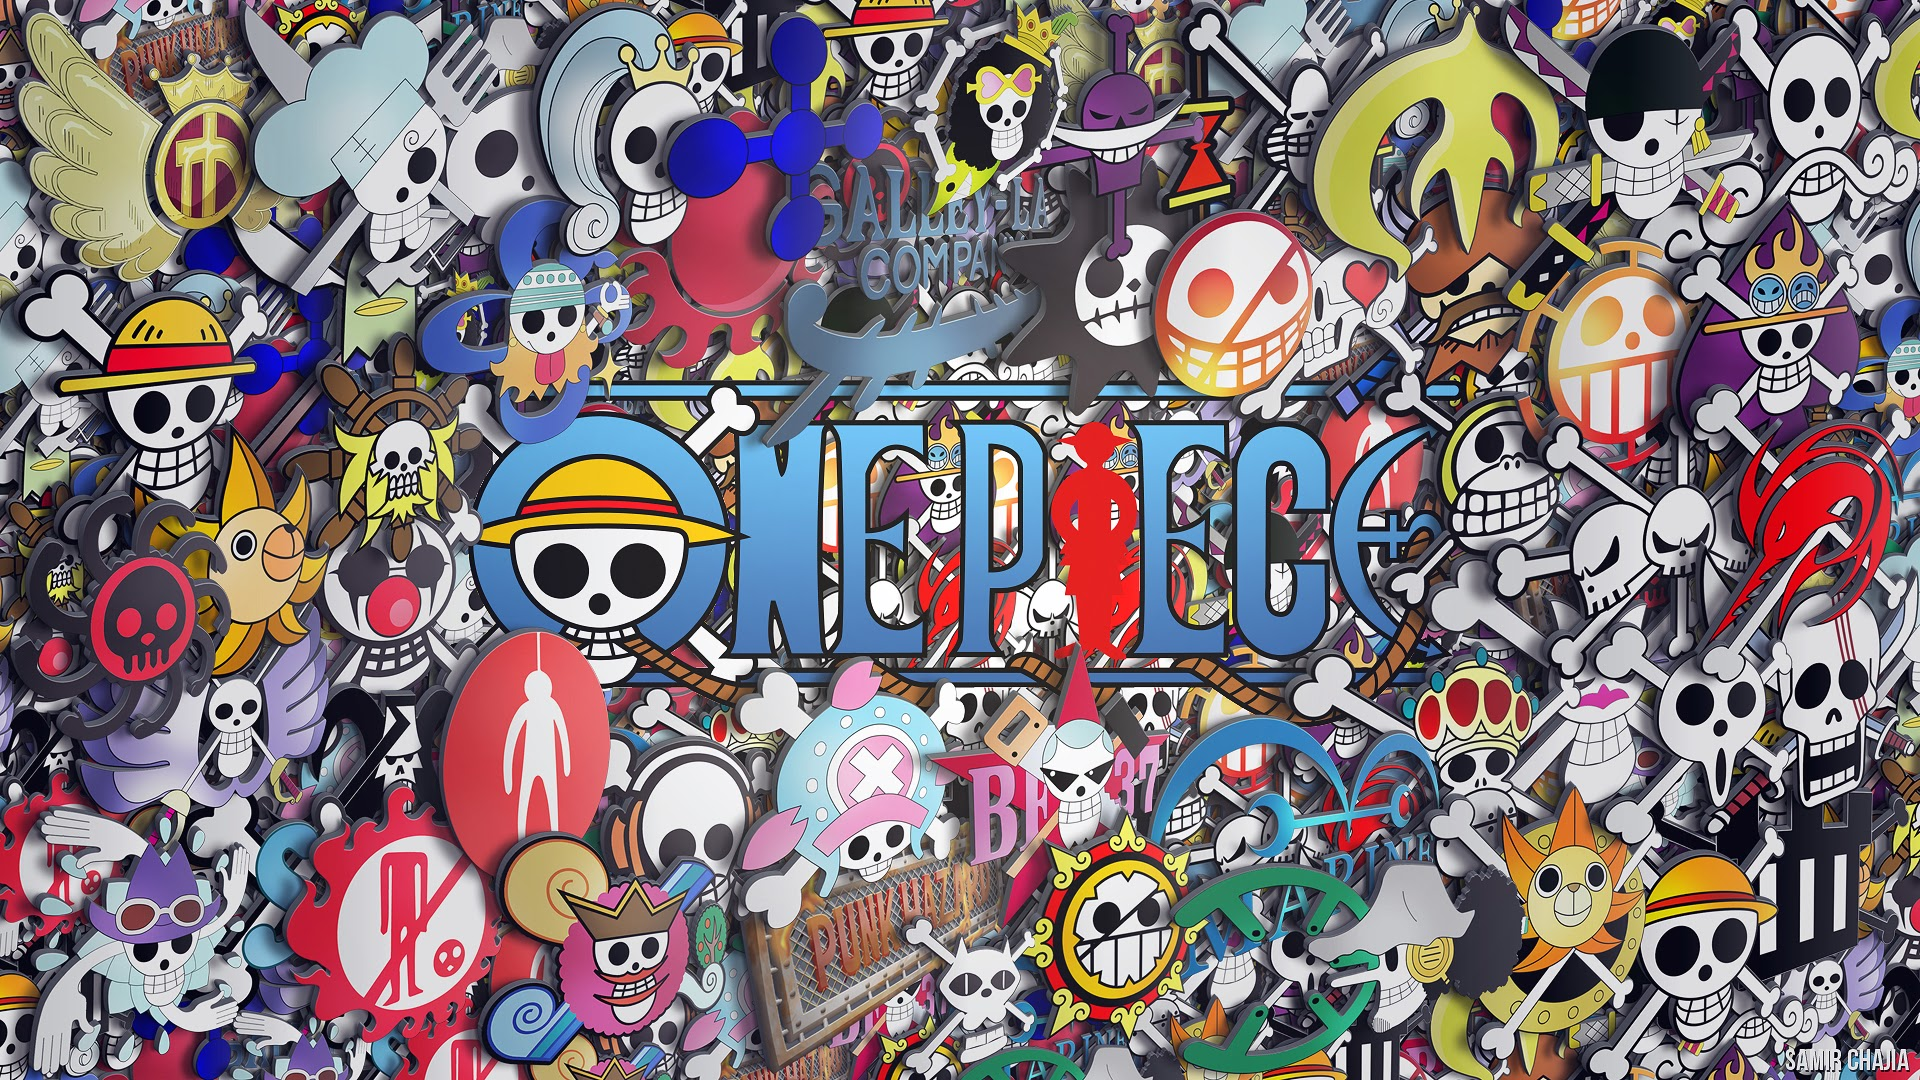 one piece pirates logo hd wallpaper one piece anime 1920x1080 a415 1920x1080